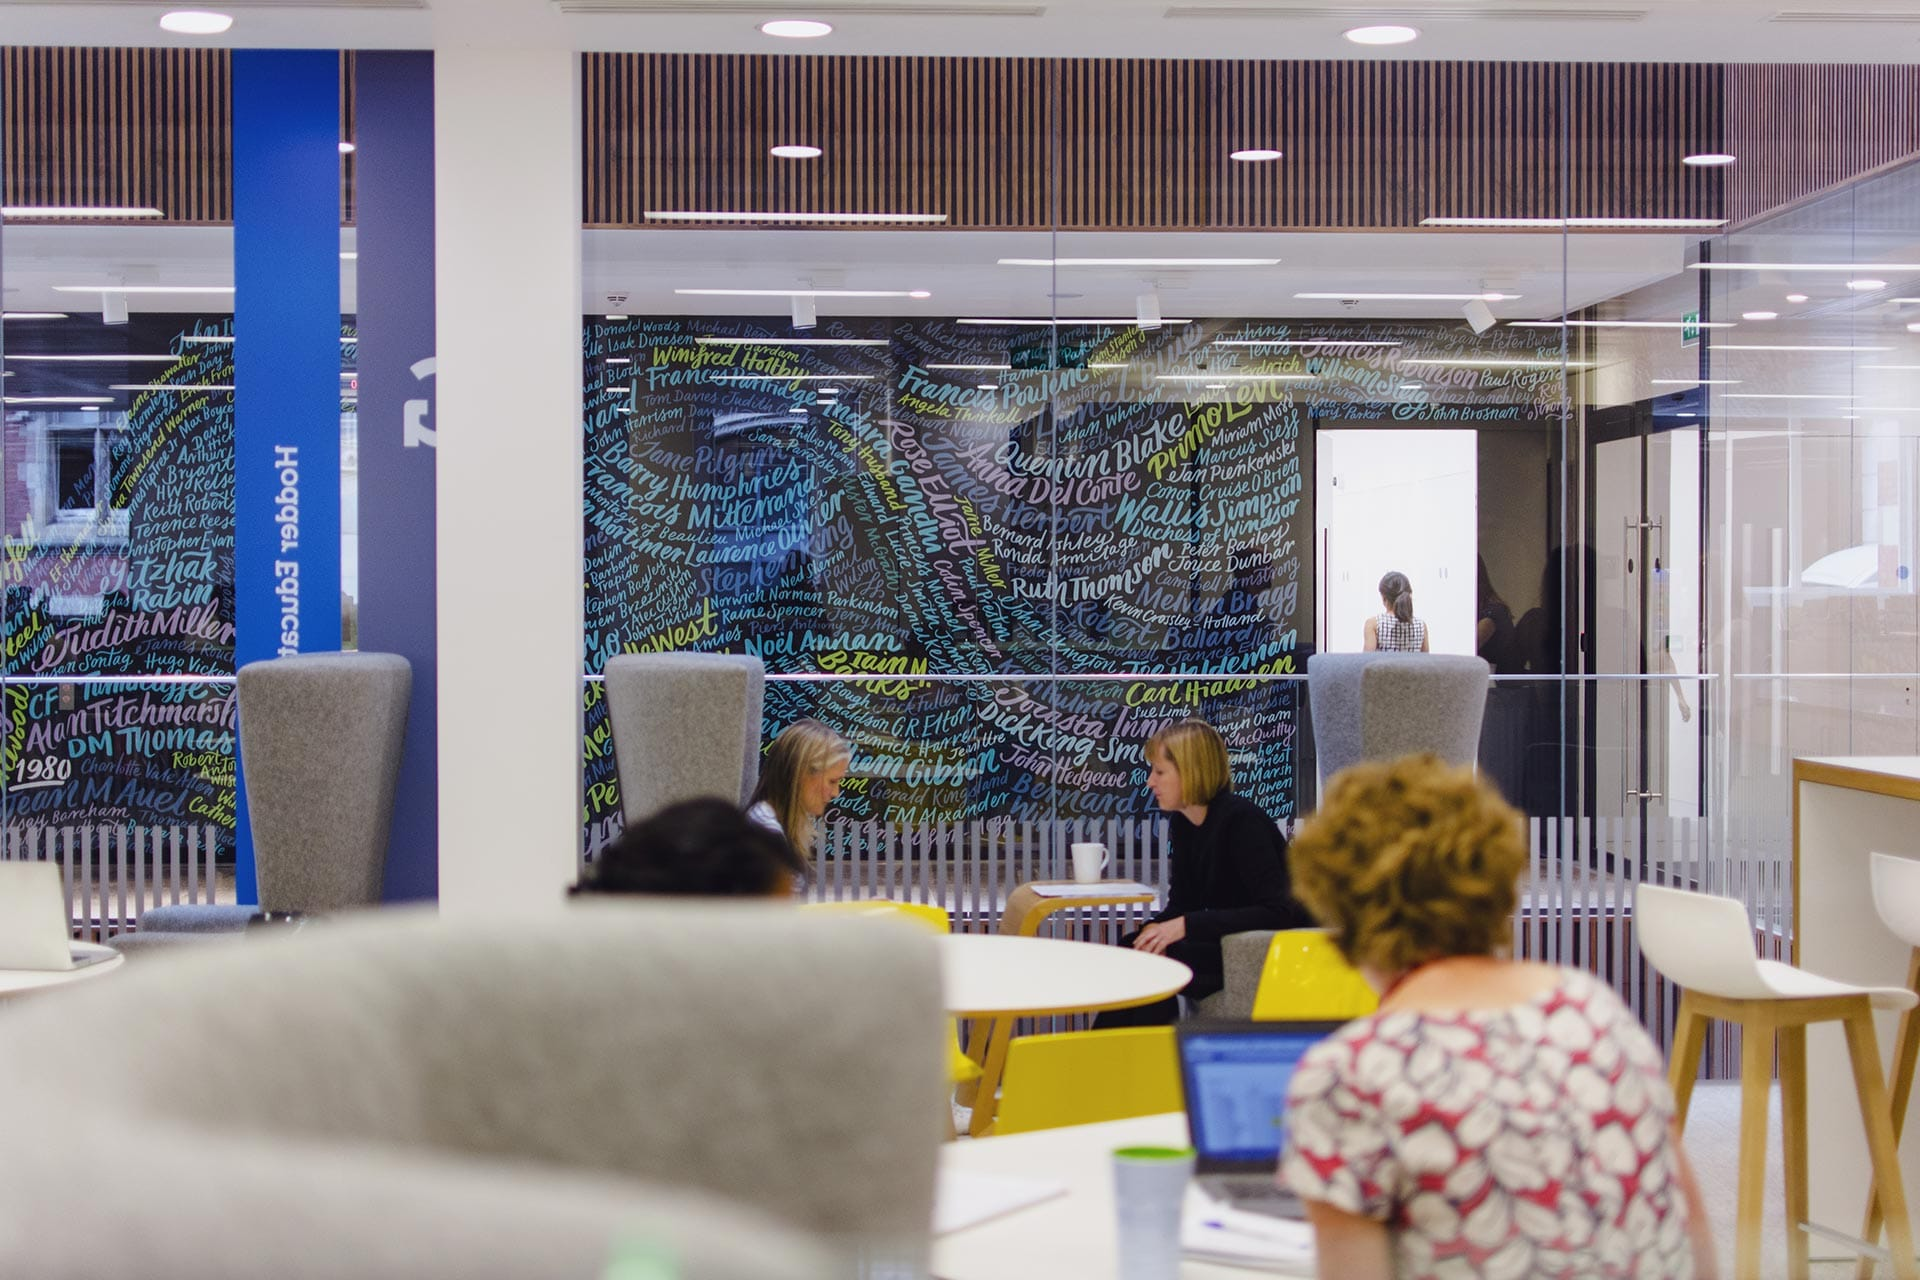 Hachette UK: The River of Authors - The Author Mural and Office Signage